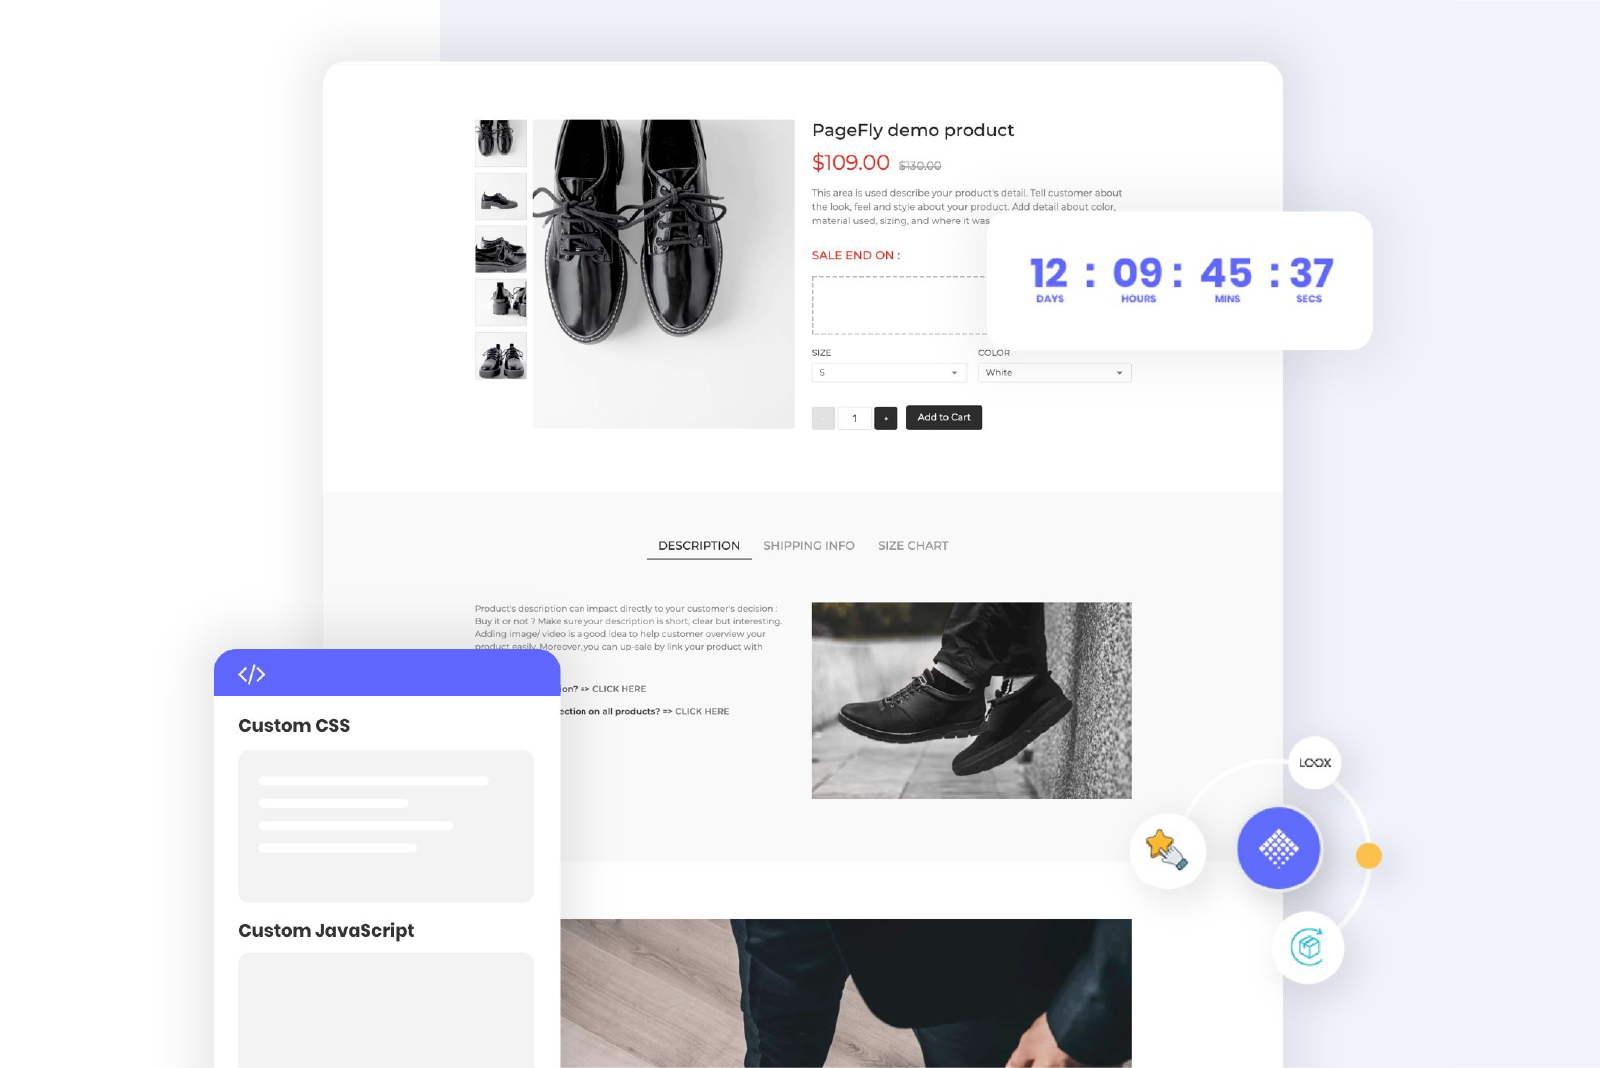 5 eCommerce Product Page Design Ideas That Will Increase Conversions